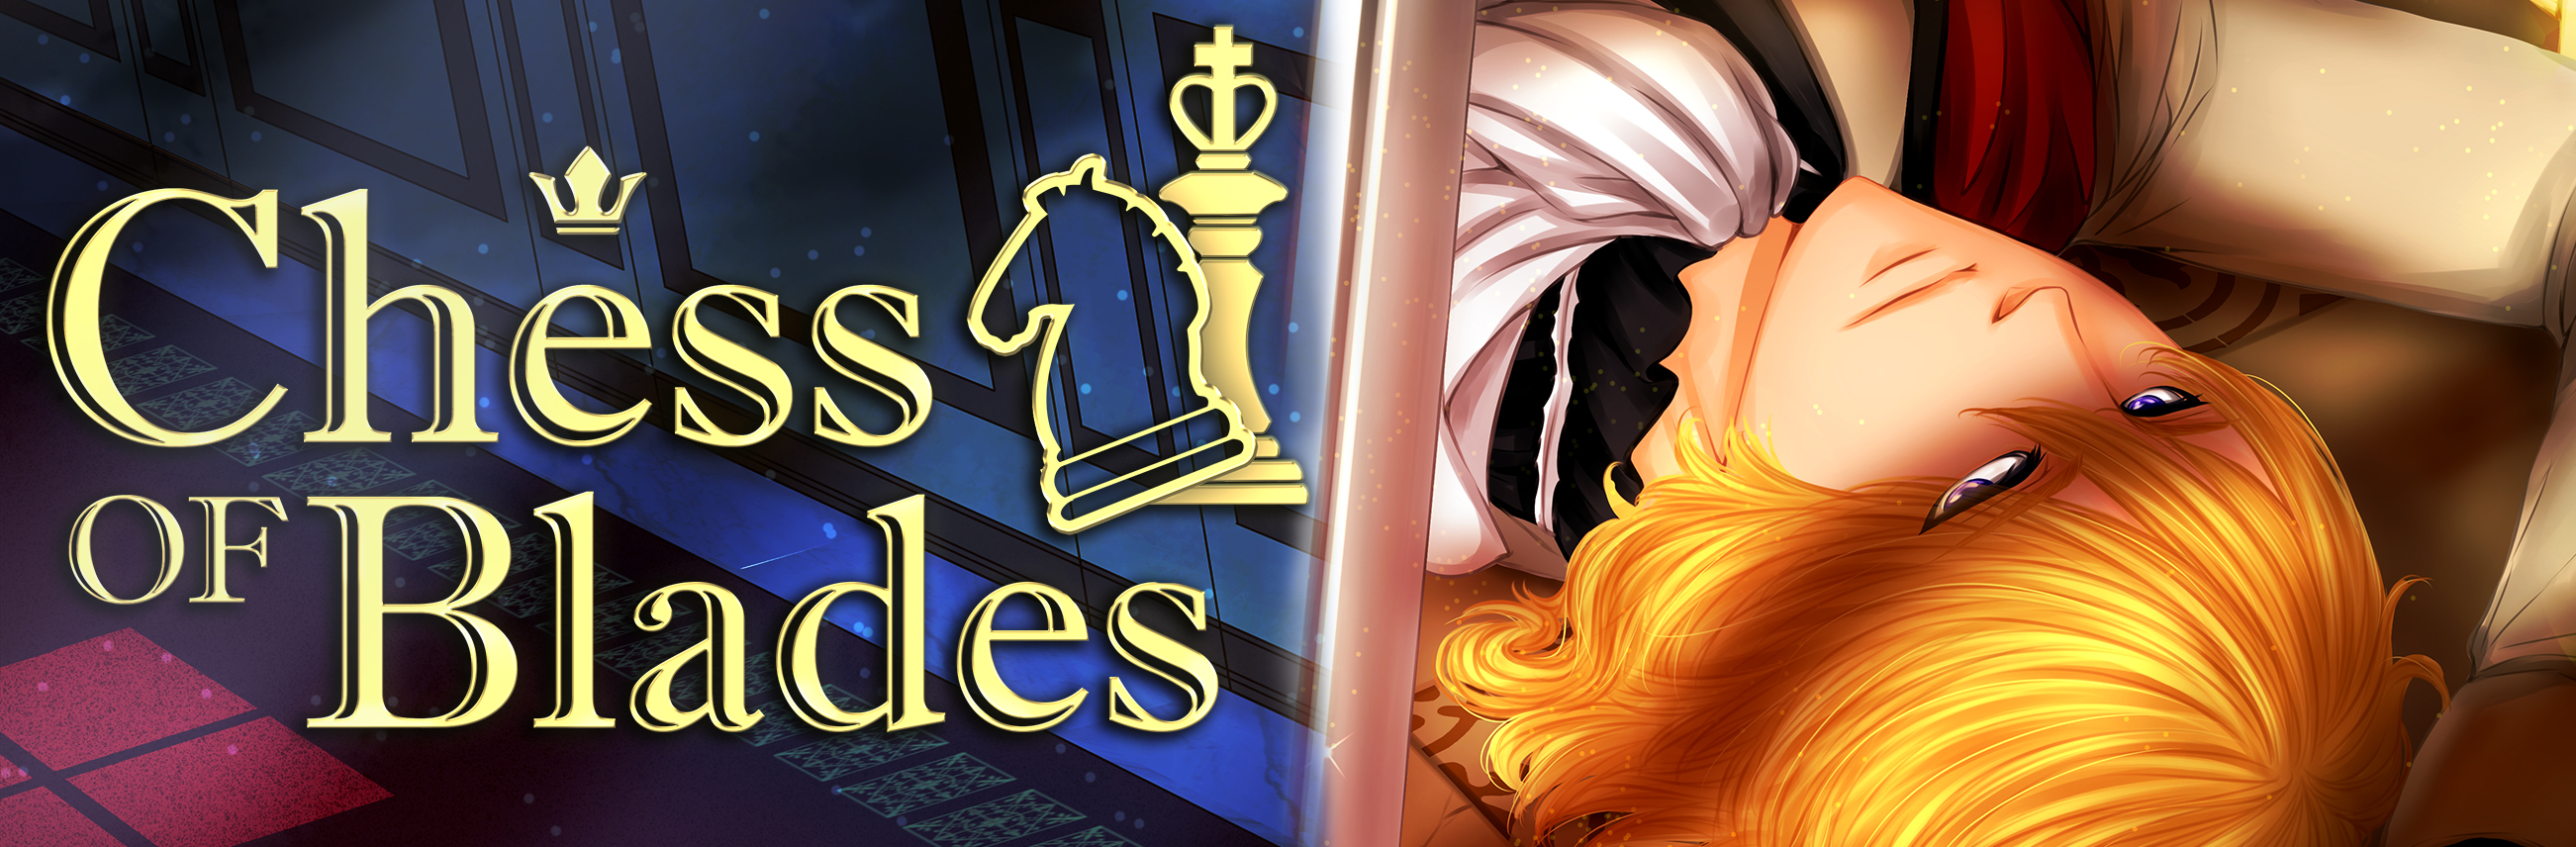 Chess of Blades (BL Visual Novel)